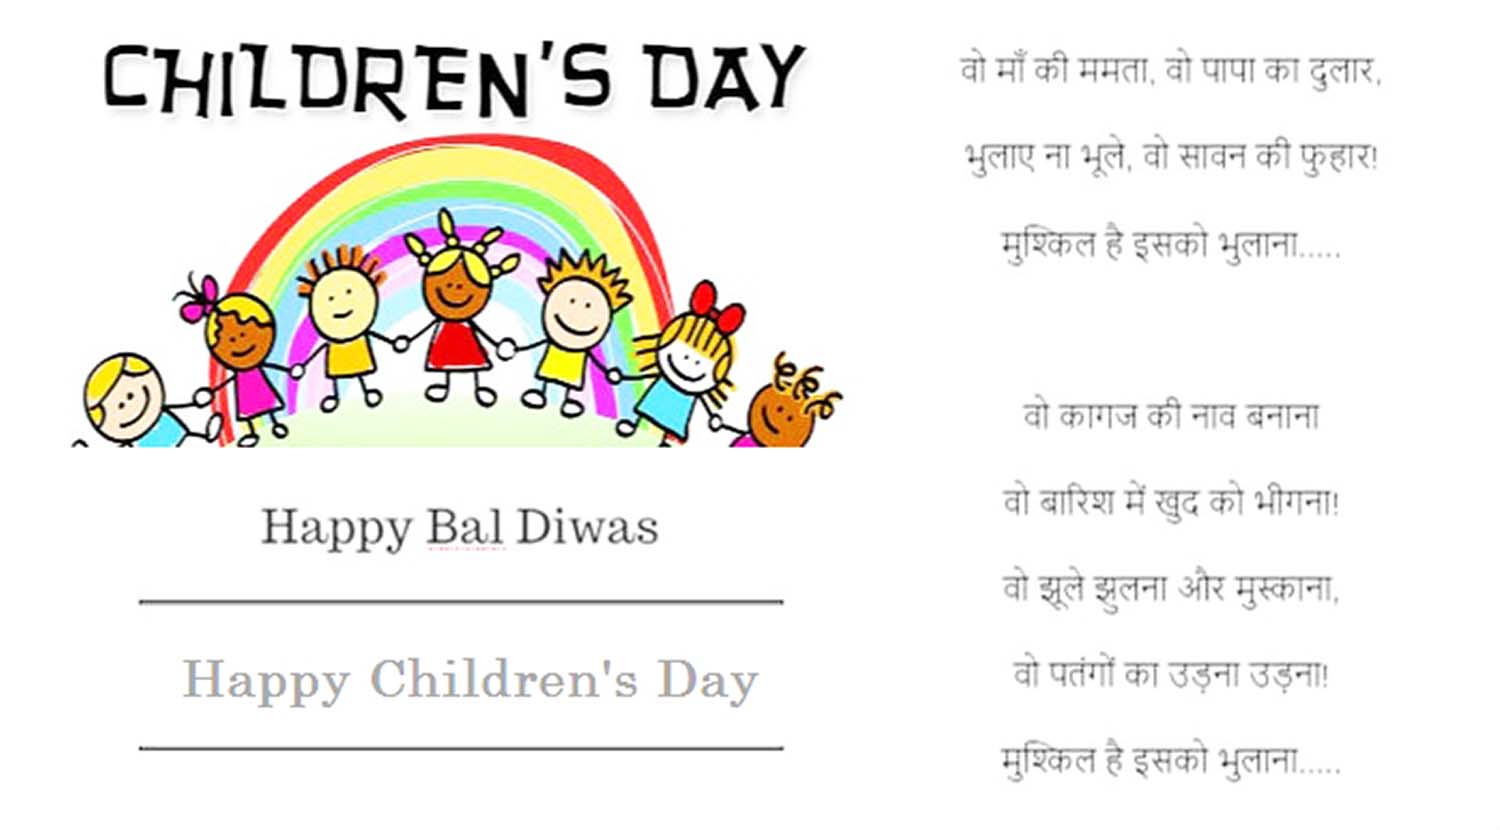 poem on children's day in hindi